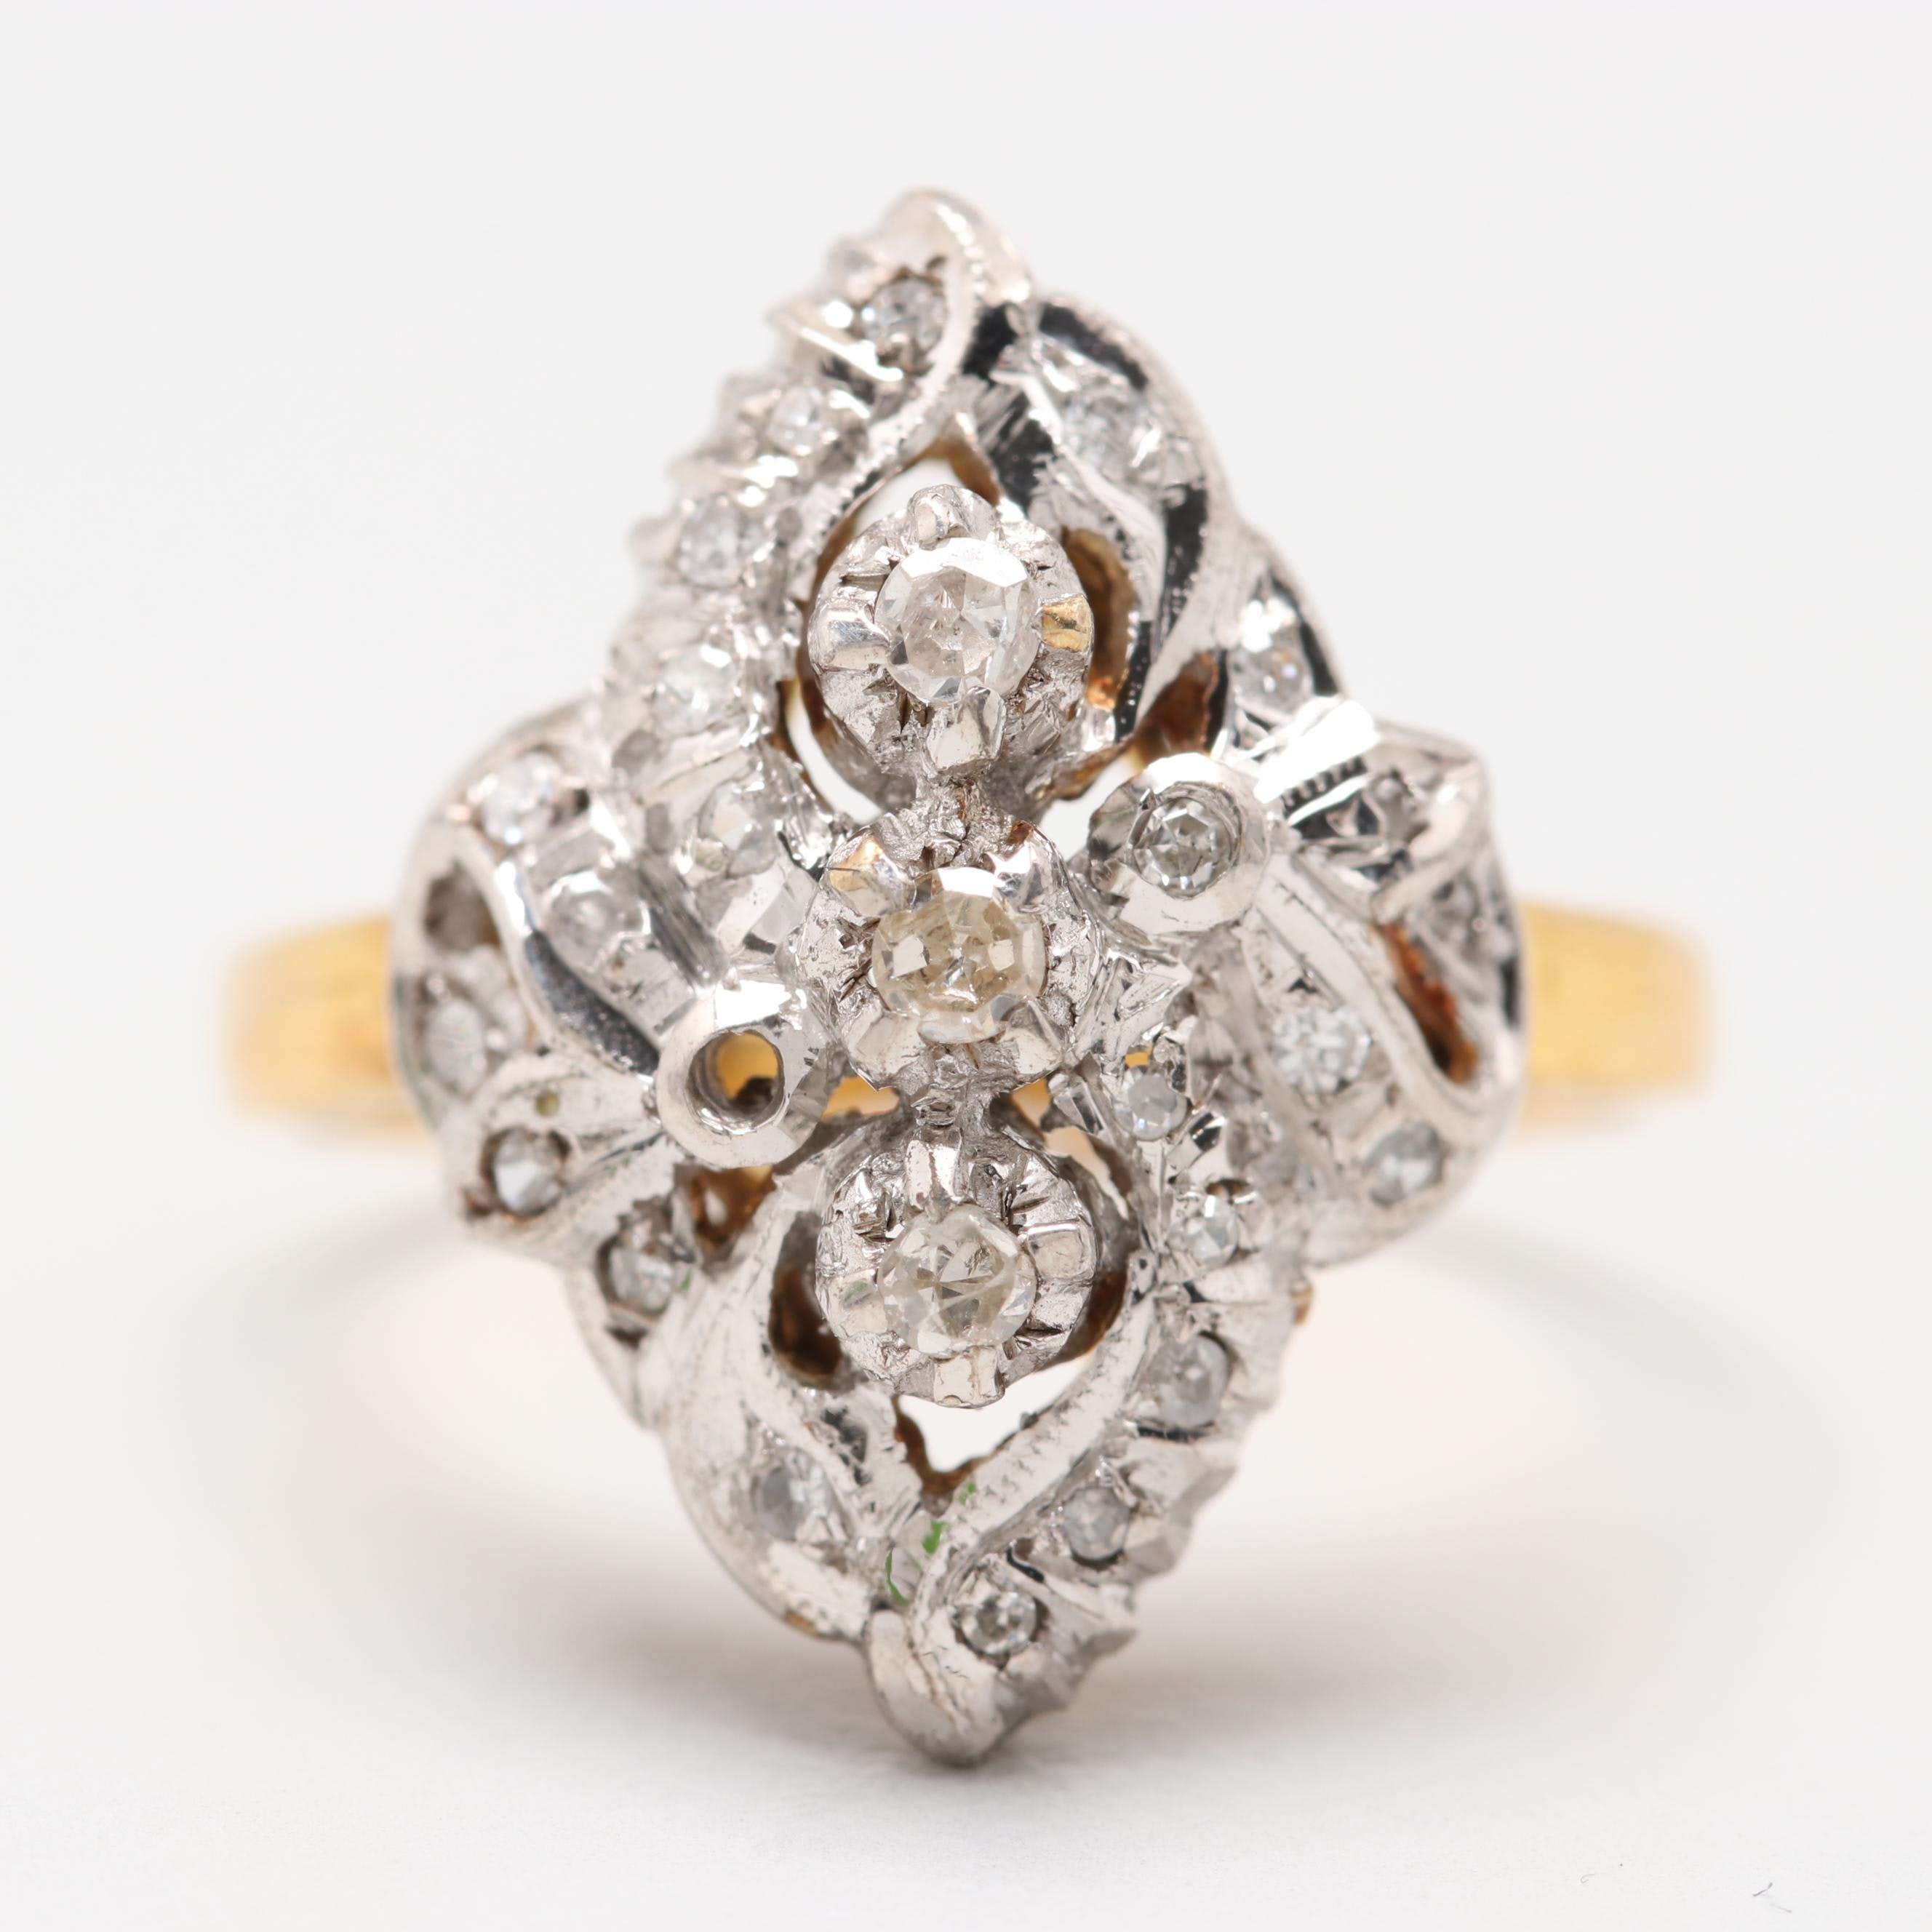 Gold Tone Sterling Silver Diamond Ring